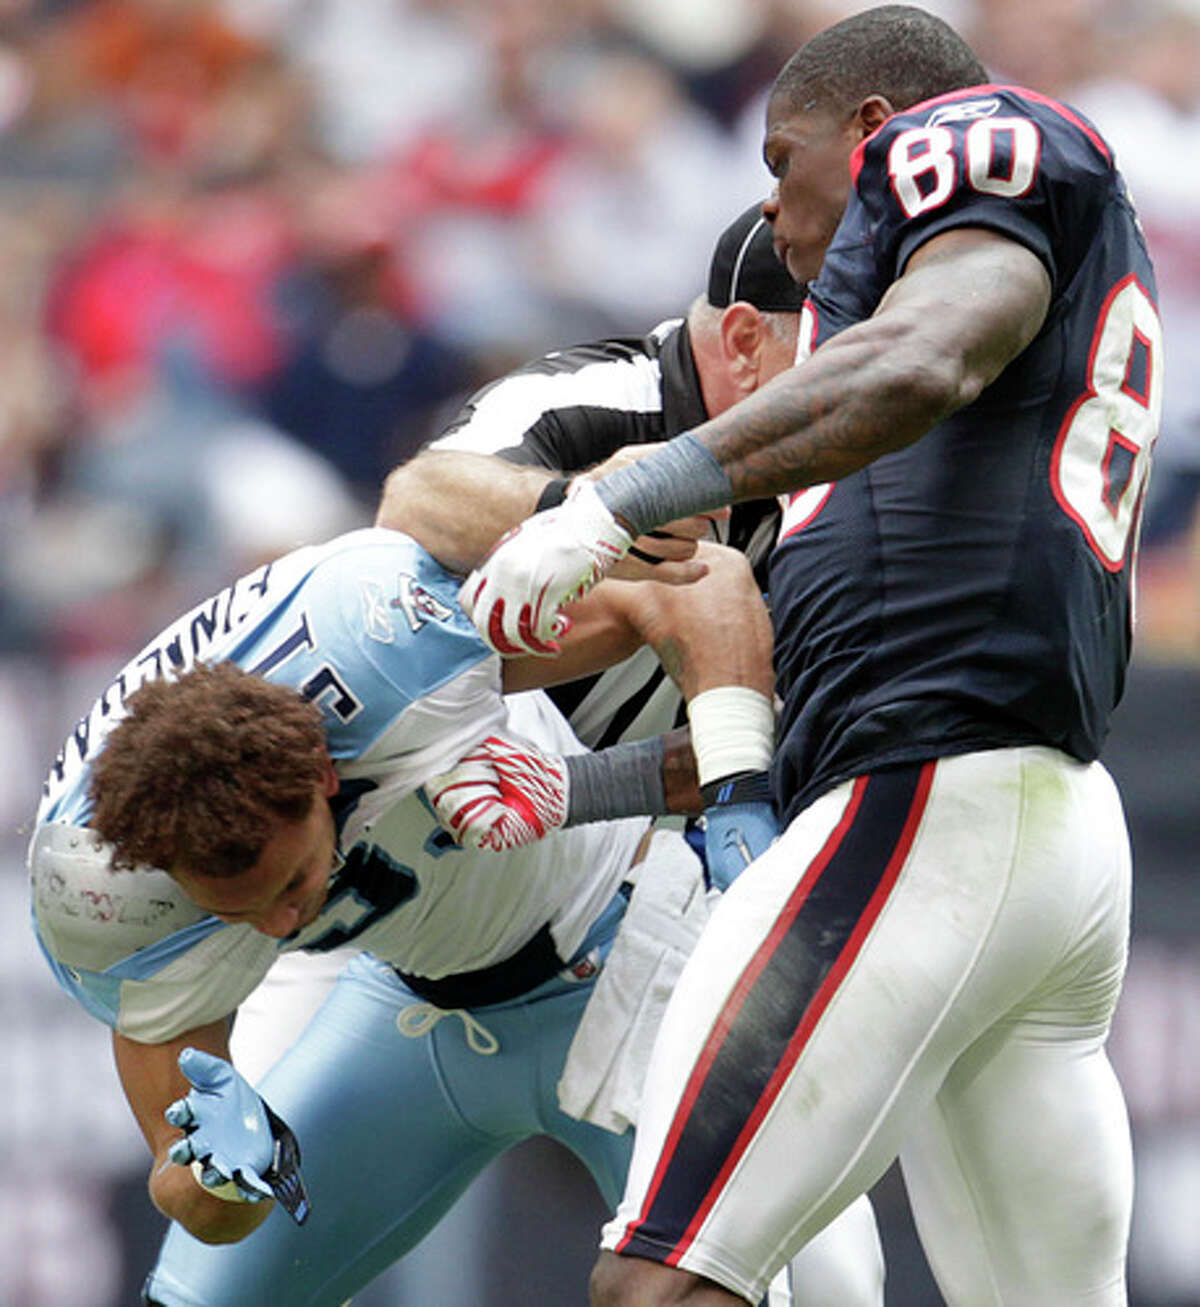 Nov. 28, 2010: Houston Texans wide receiver Andre Johnson (80) and Tennessee Titans cornerback Cortland Finnegan (31) get into a fist fight during the fourth quarter and both were ejected of the Houston Texans-Tennessee Titans NFL football game at Reliant Stadium in Houston.